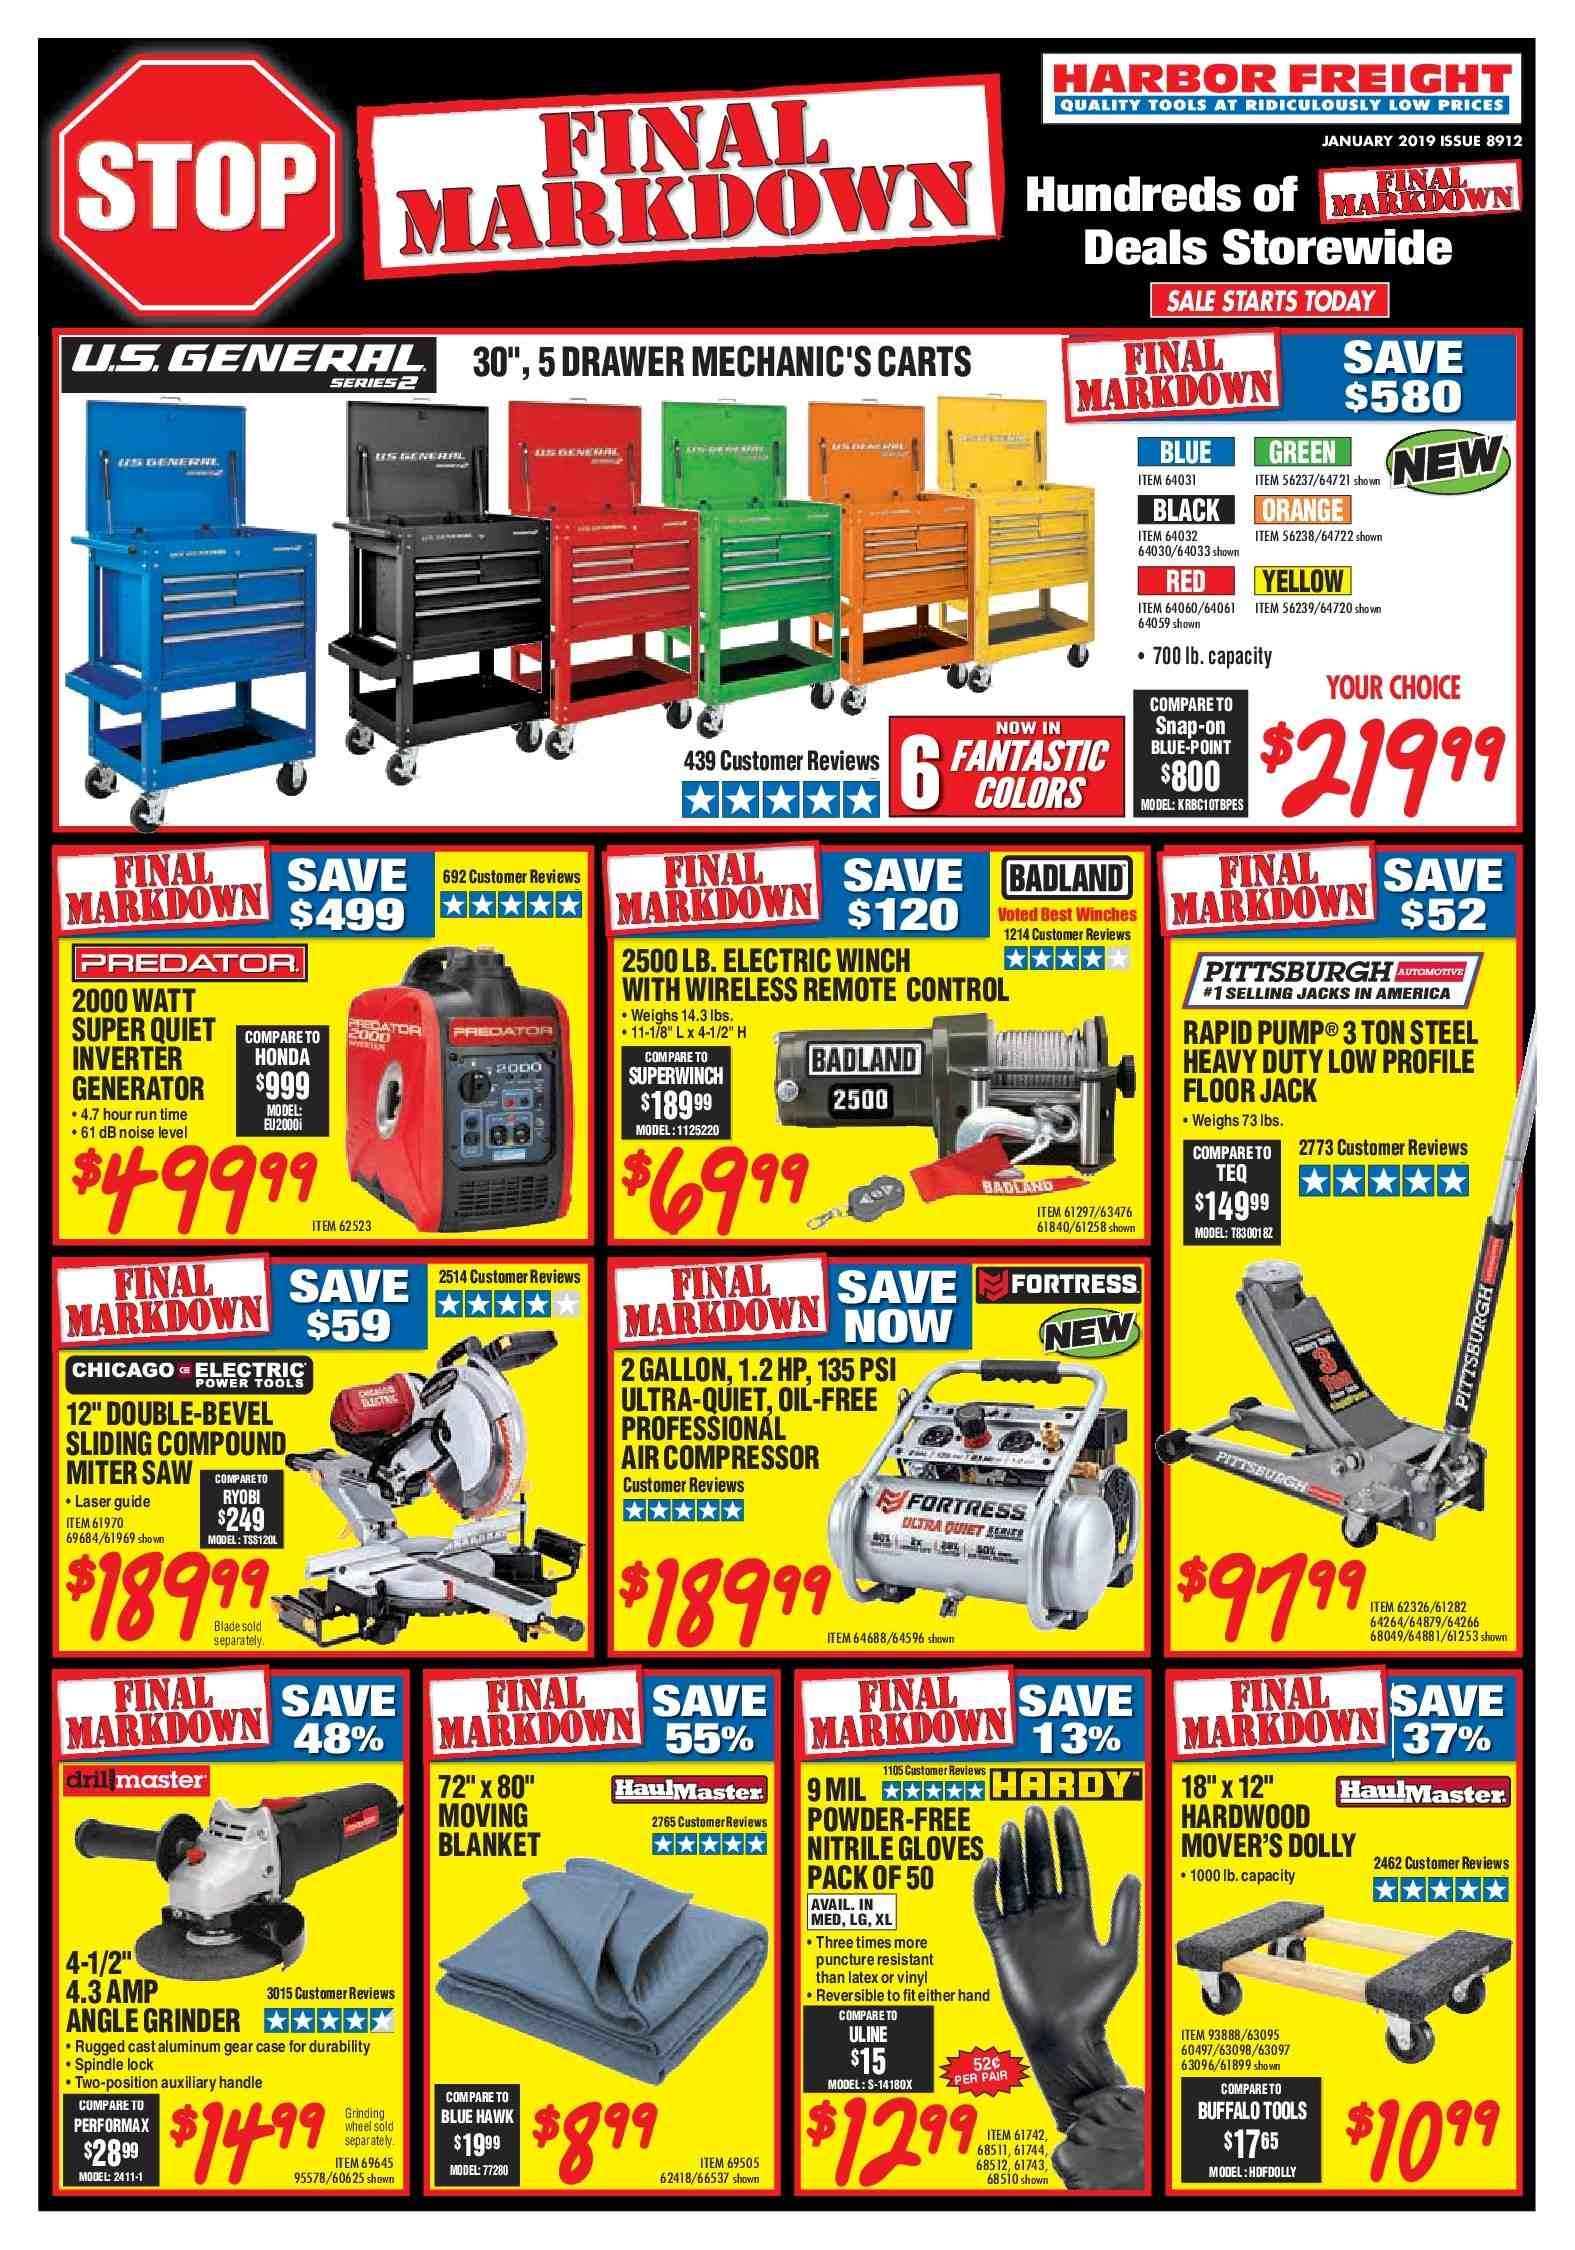 Harbor Freight Flyer - 01.01.2019 - 01.31.2019 - Sales products - air compressor, blanket, case, drawer, floor jack, gloves, remote control, handles, powder, predator, performax, power tools, wireless, grinder. Page 1.